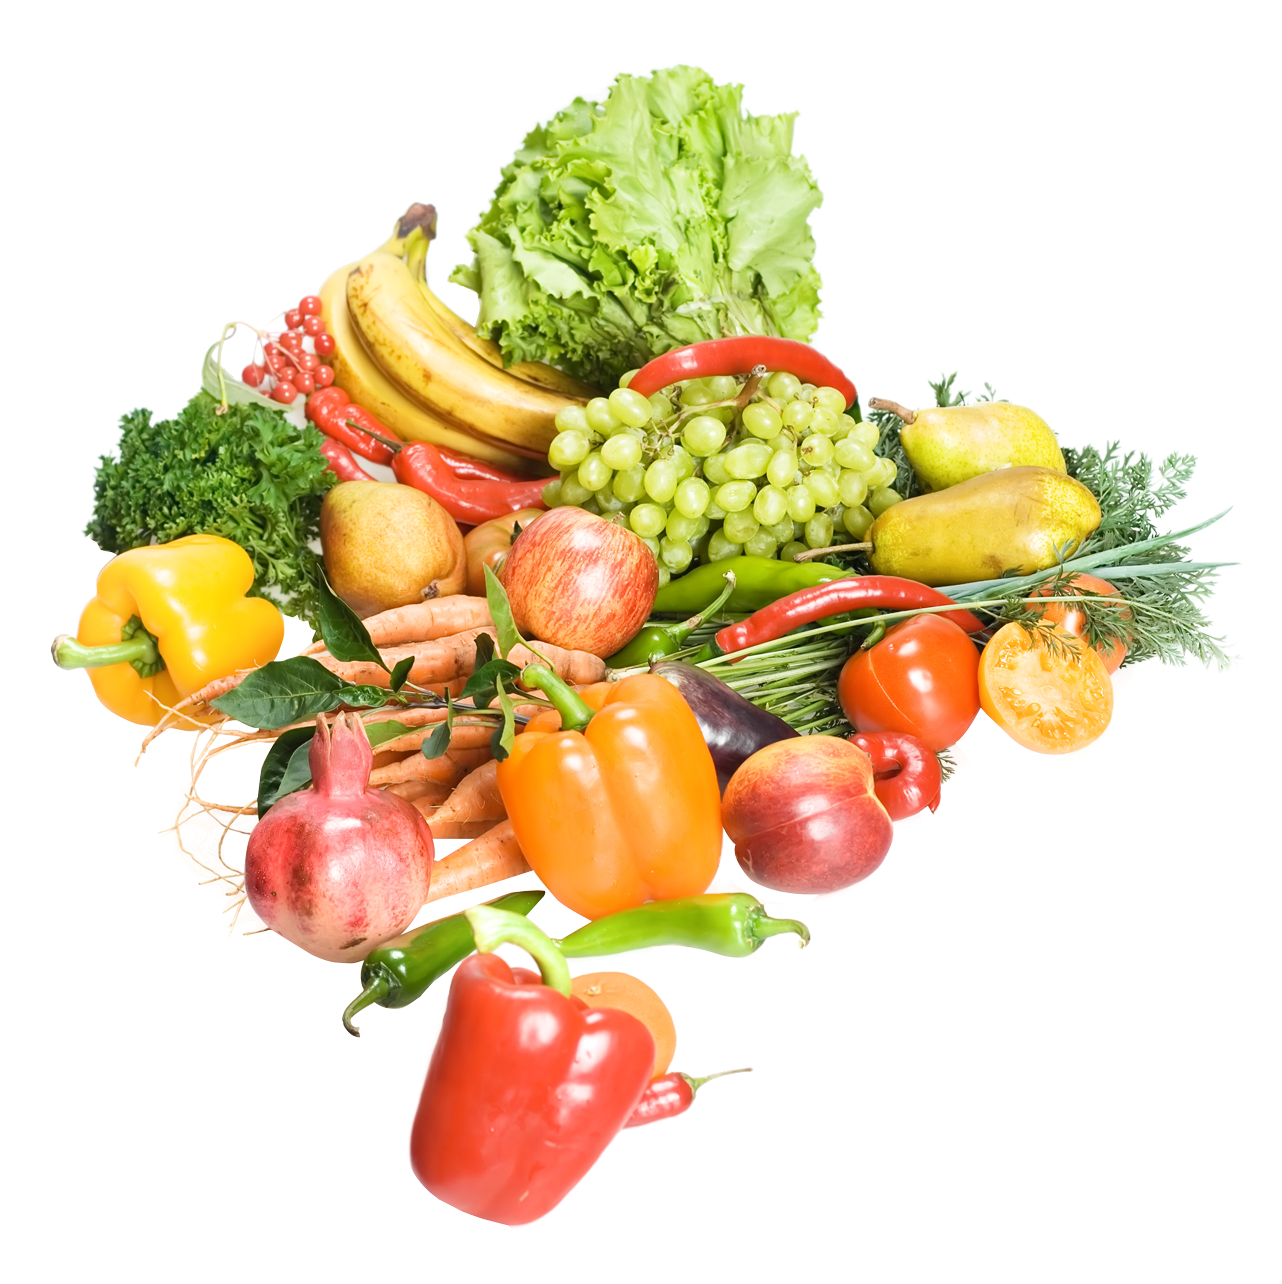 Fruits And Vegetables PNG Image.